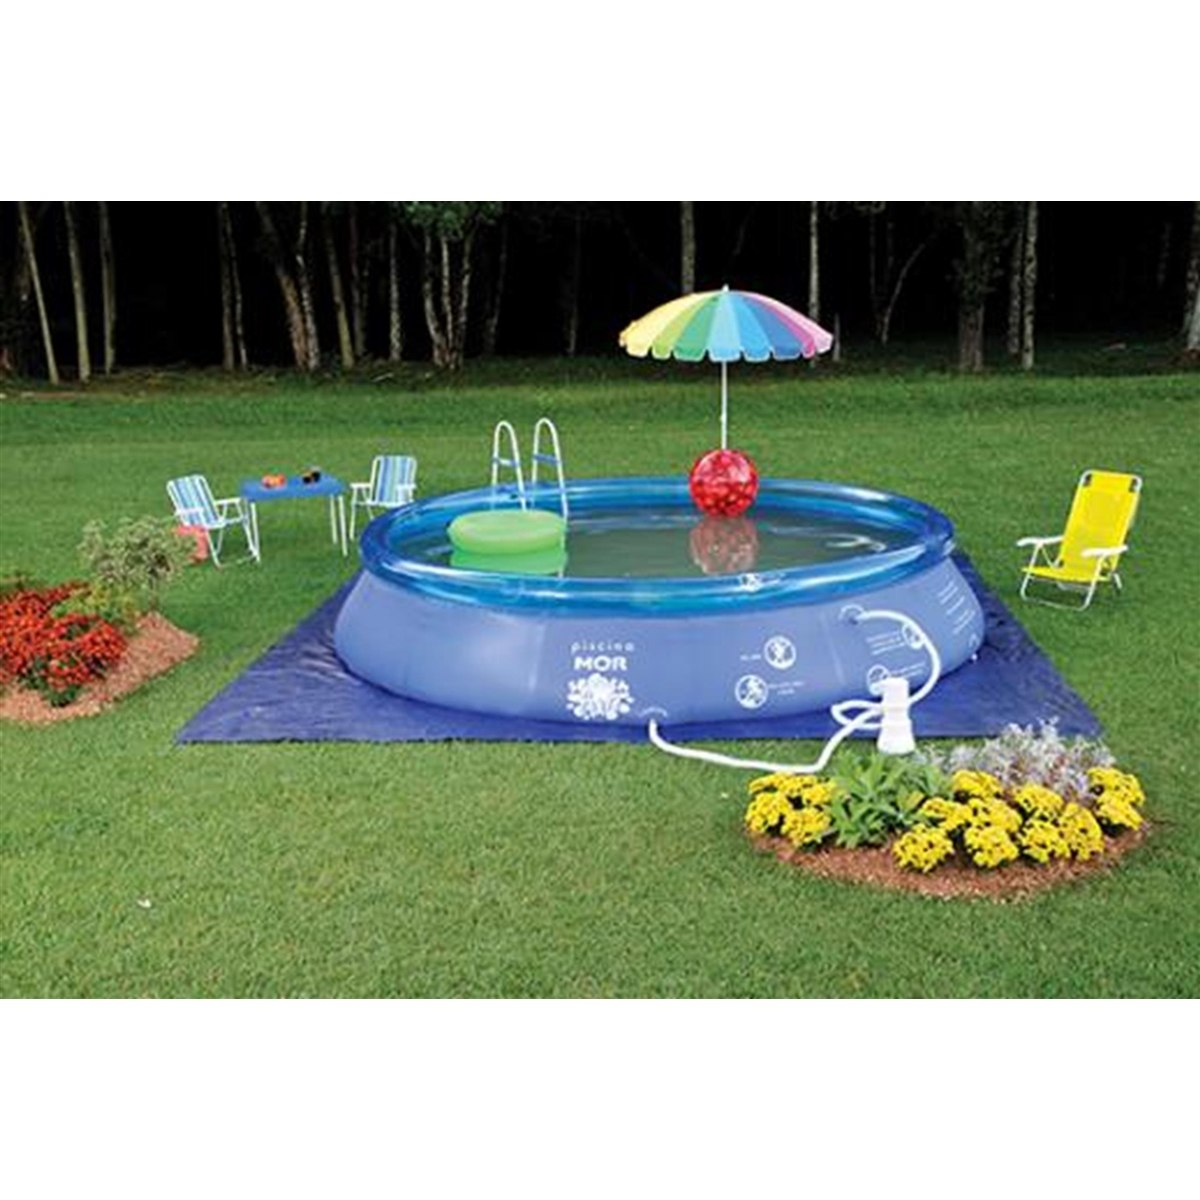 Piscina Inflavel Redonda Splash Fun 12000 Litros Mor R